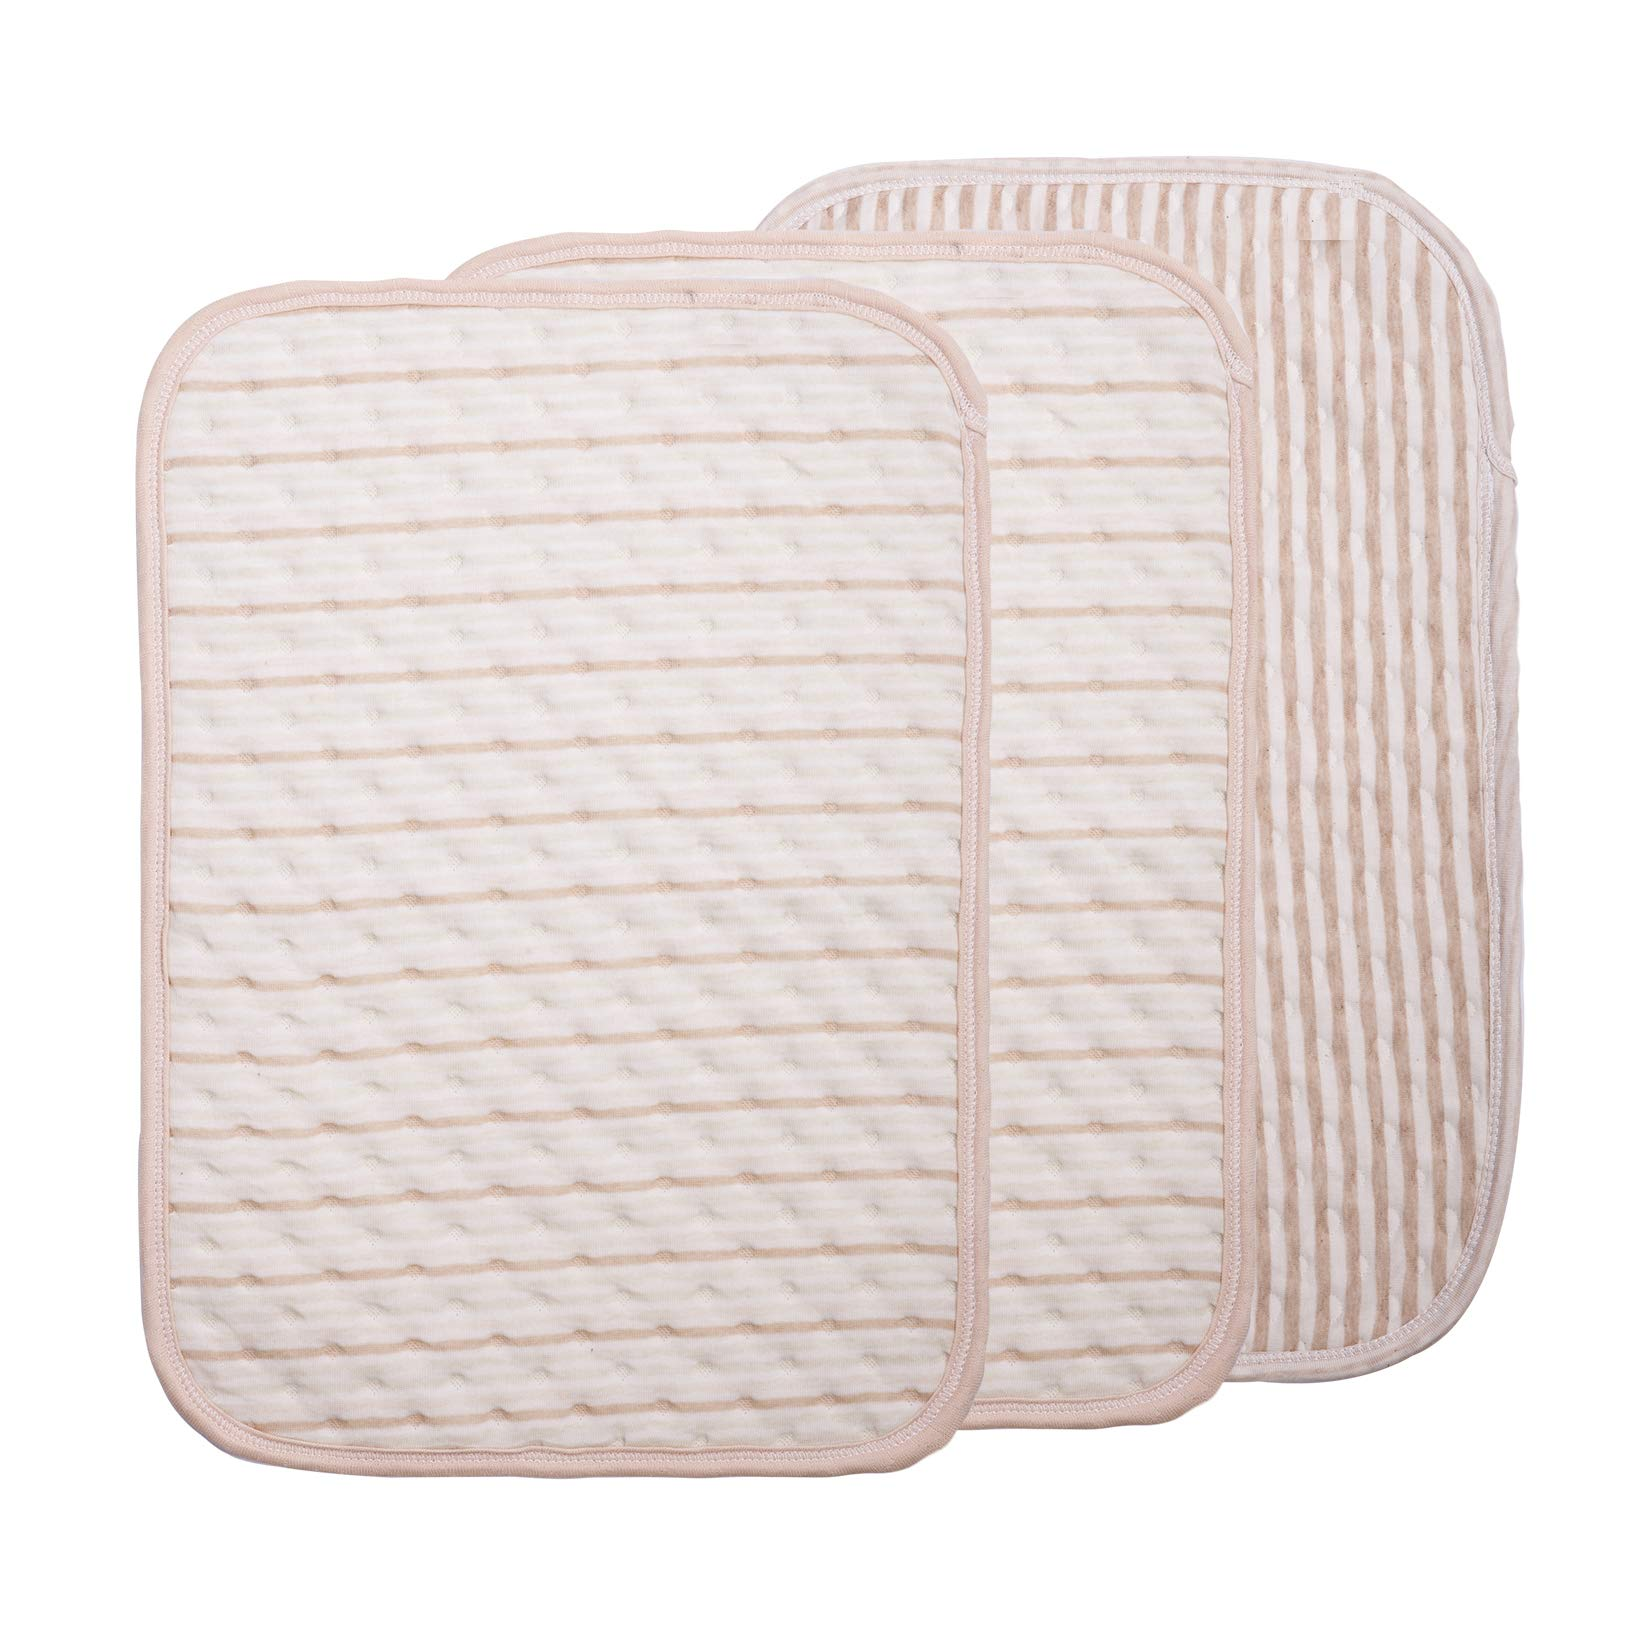 3 Packs Waterproof Soft Changing Pad Liners Suitable for Babies Cribs or Adults, Lengthened and Thickened (2color+1 tripes) by LiveTree